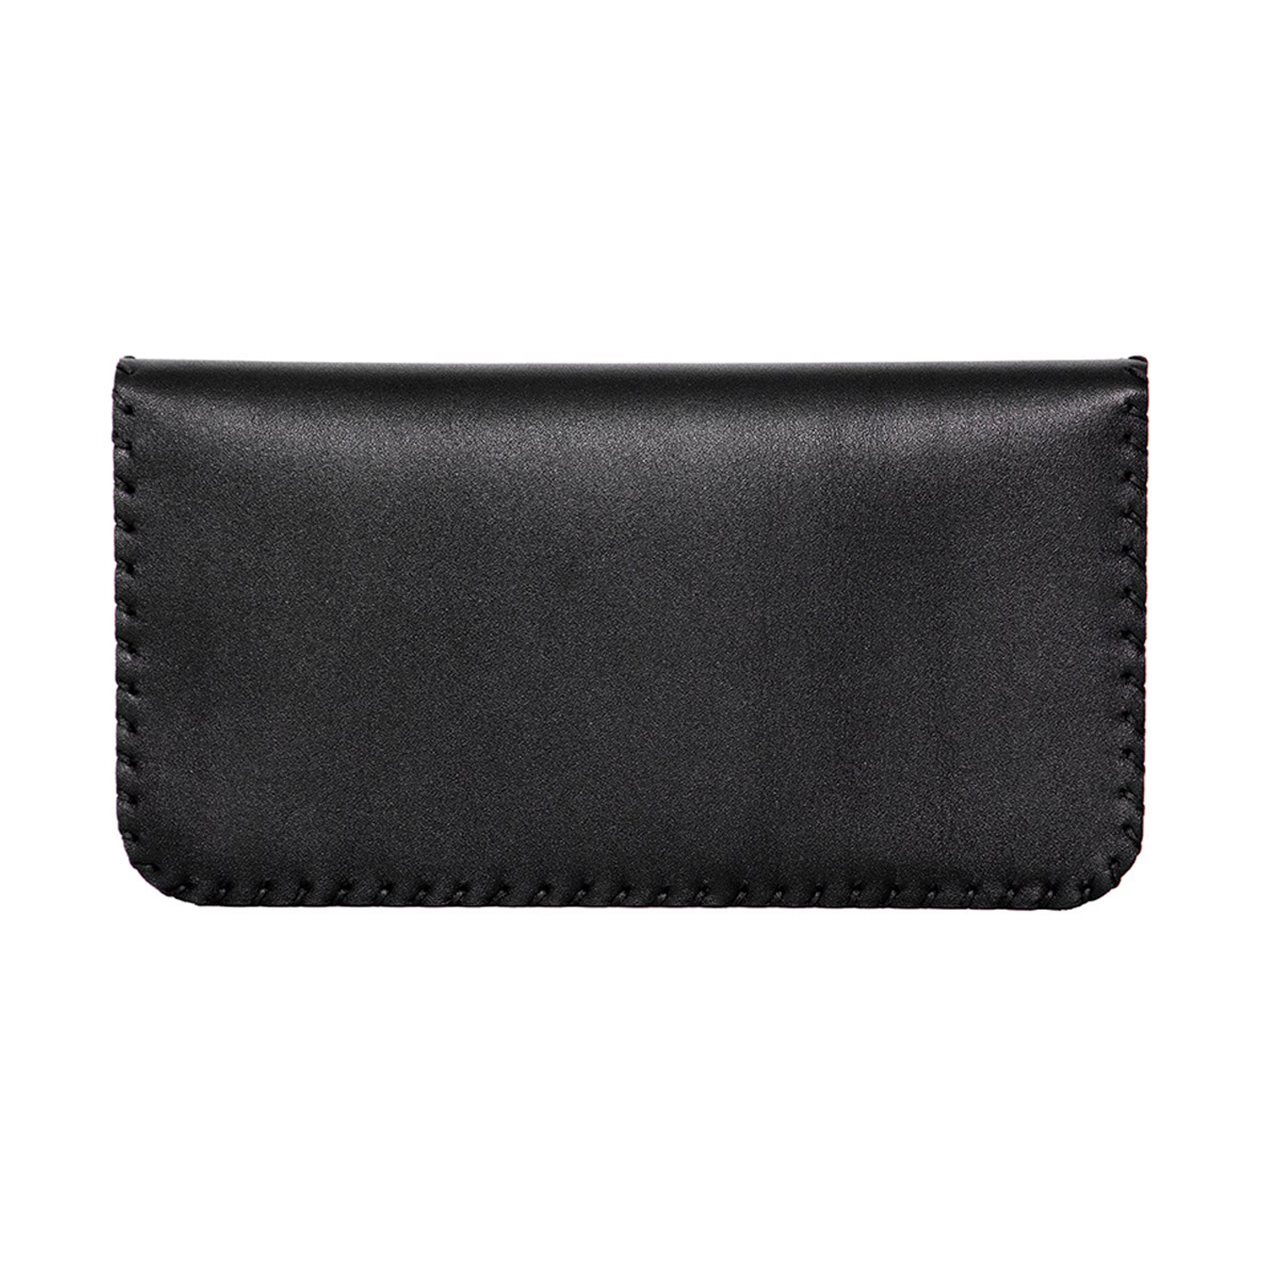 TIKISH NATURAL LEATHER WALLET, TW02 MODEL